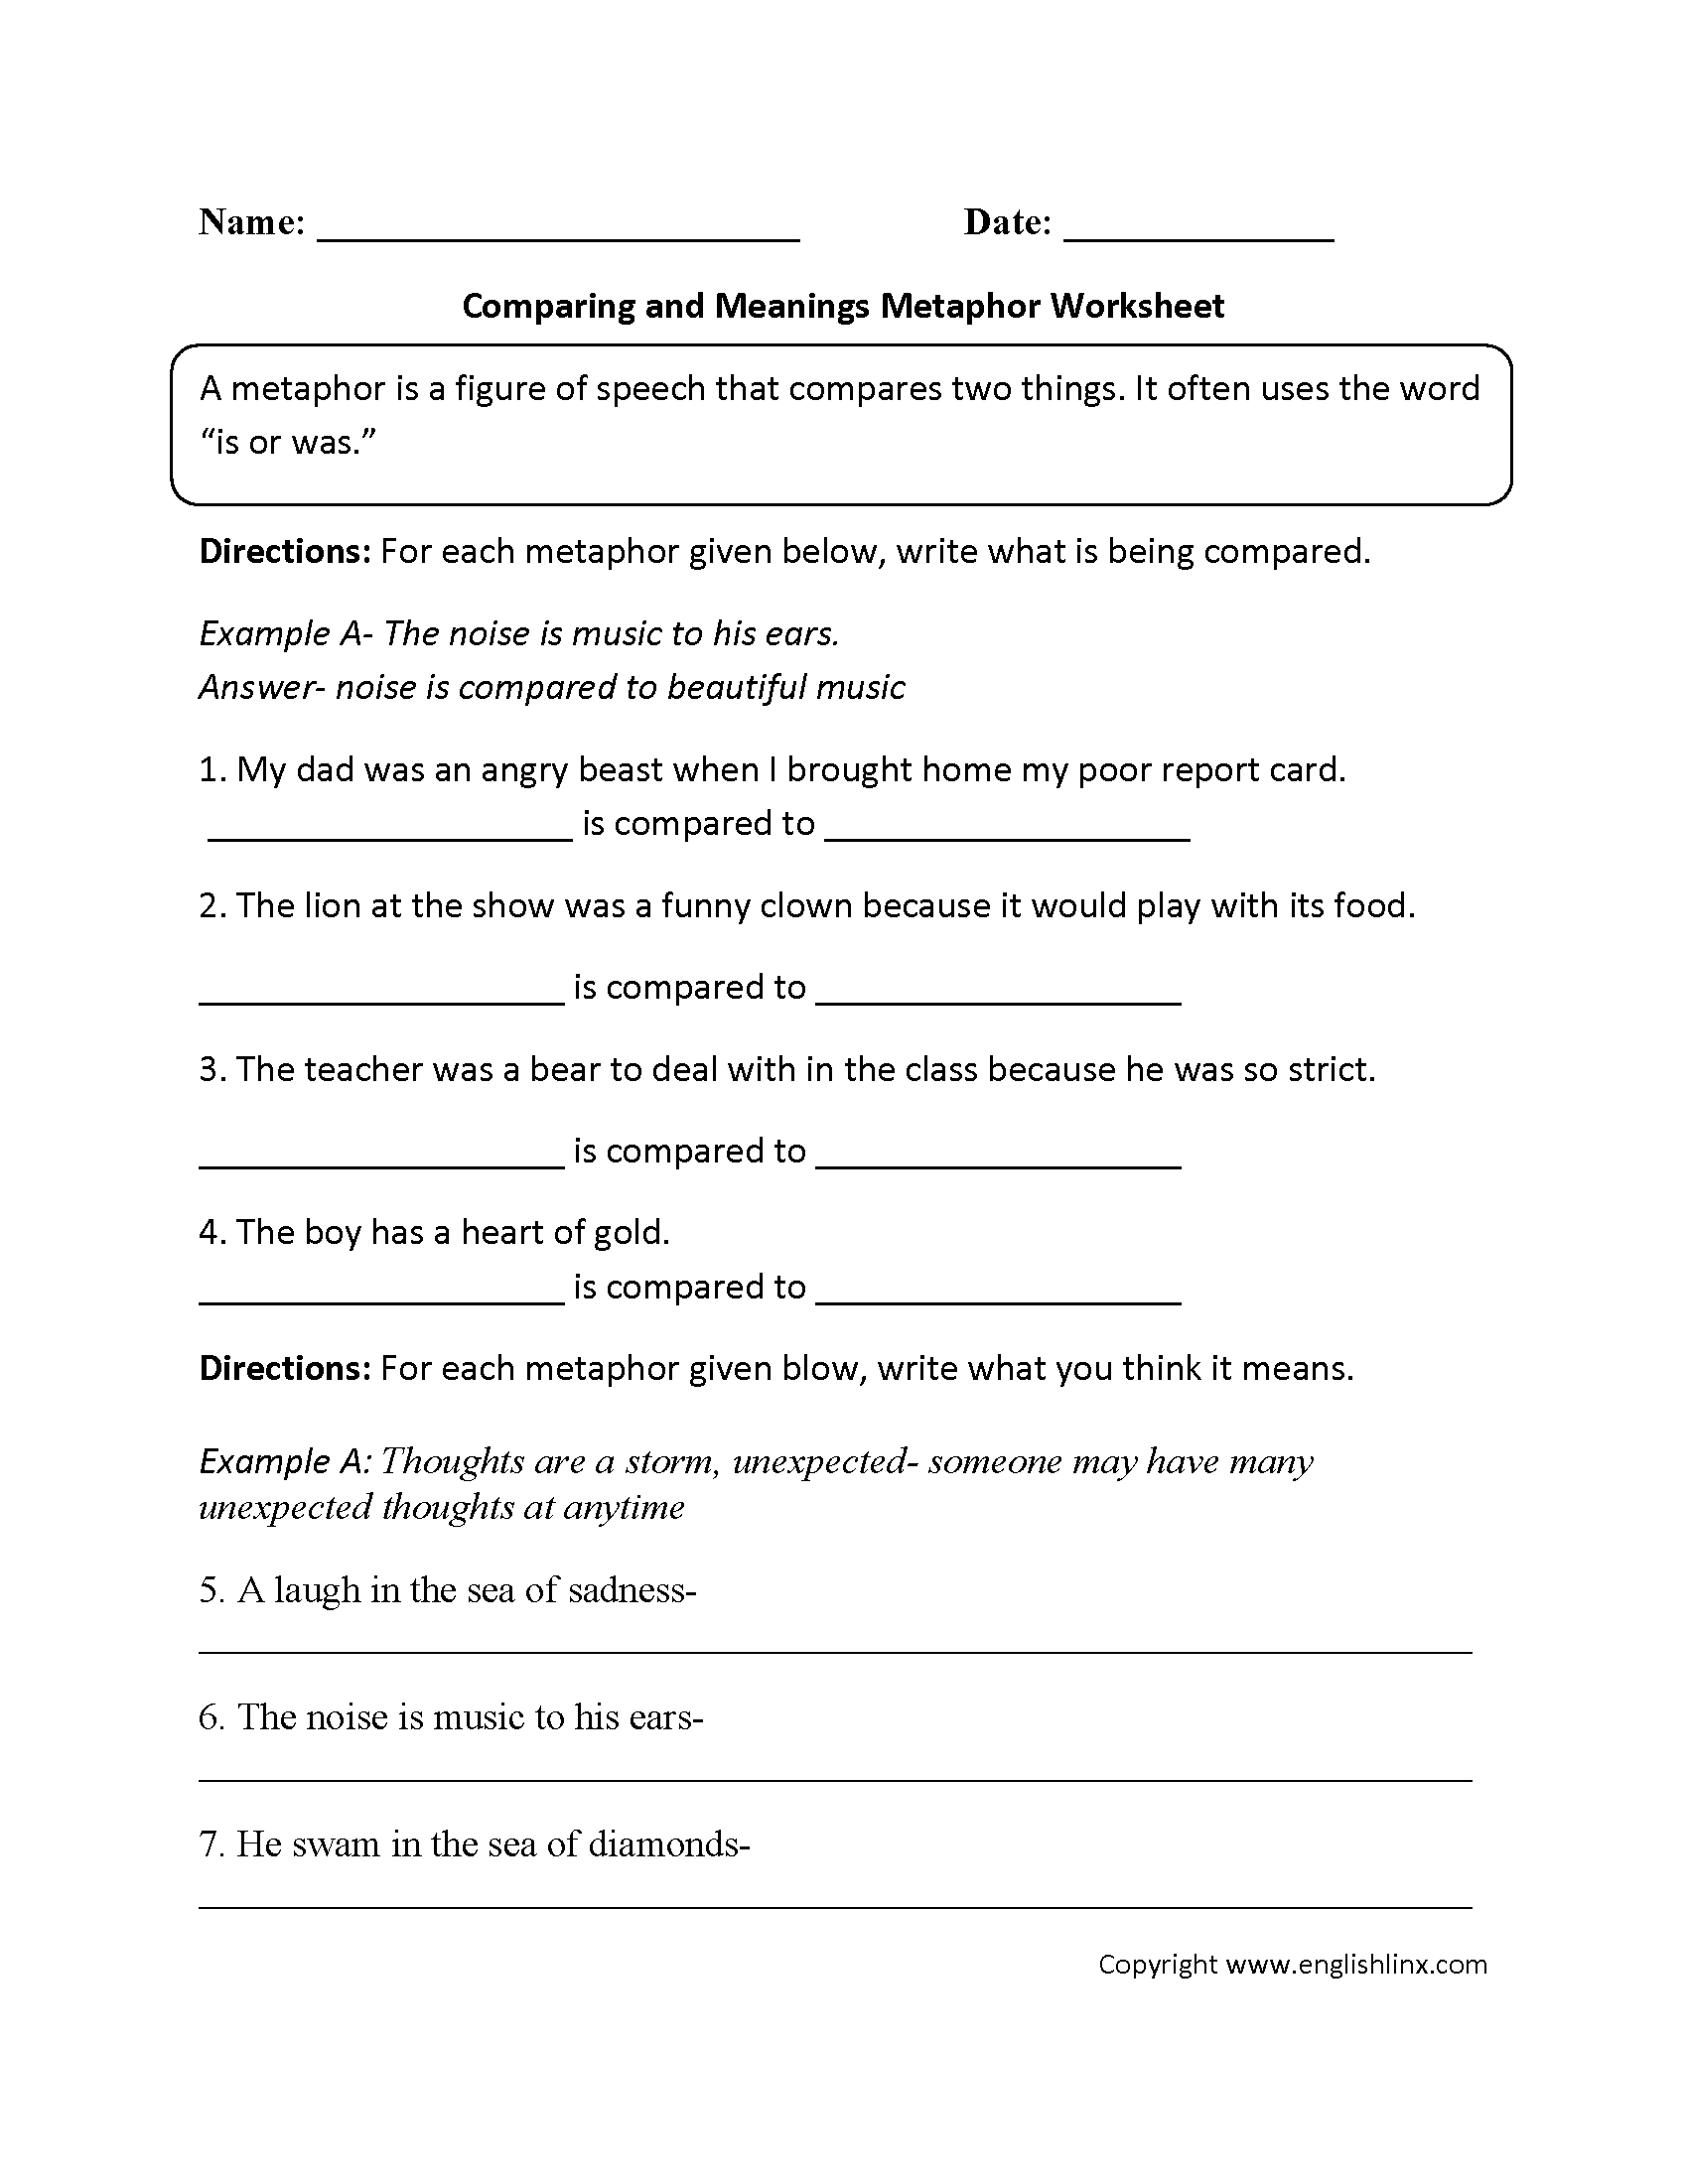 Worksheets Parts Of Speech Worksheets Middle School englishlinx com metaphors worksheets metaphor worksheet